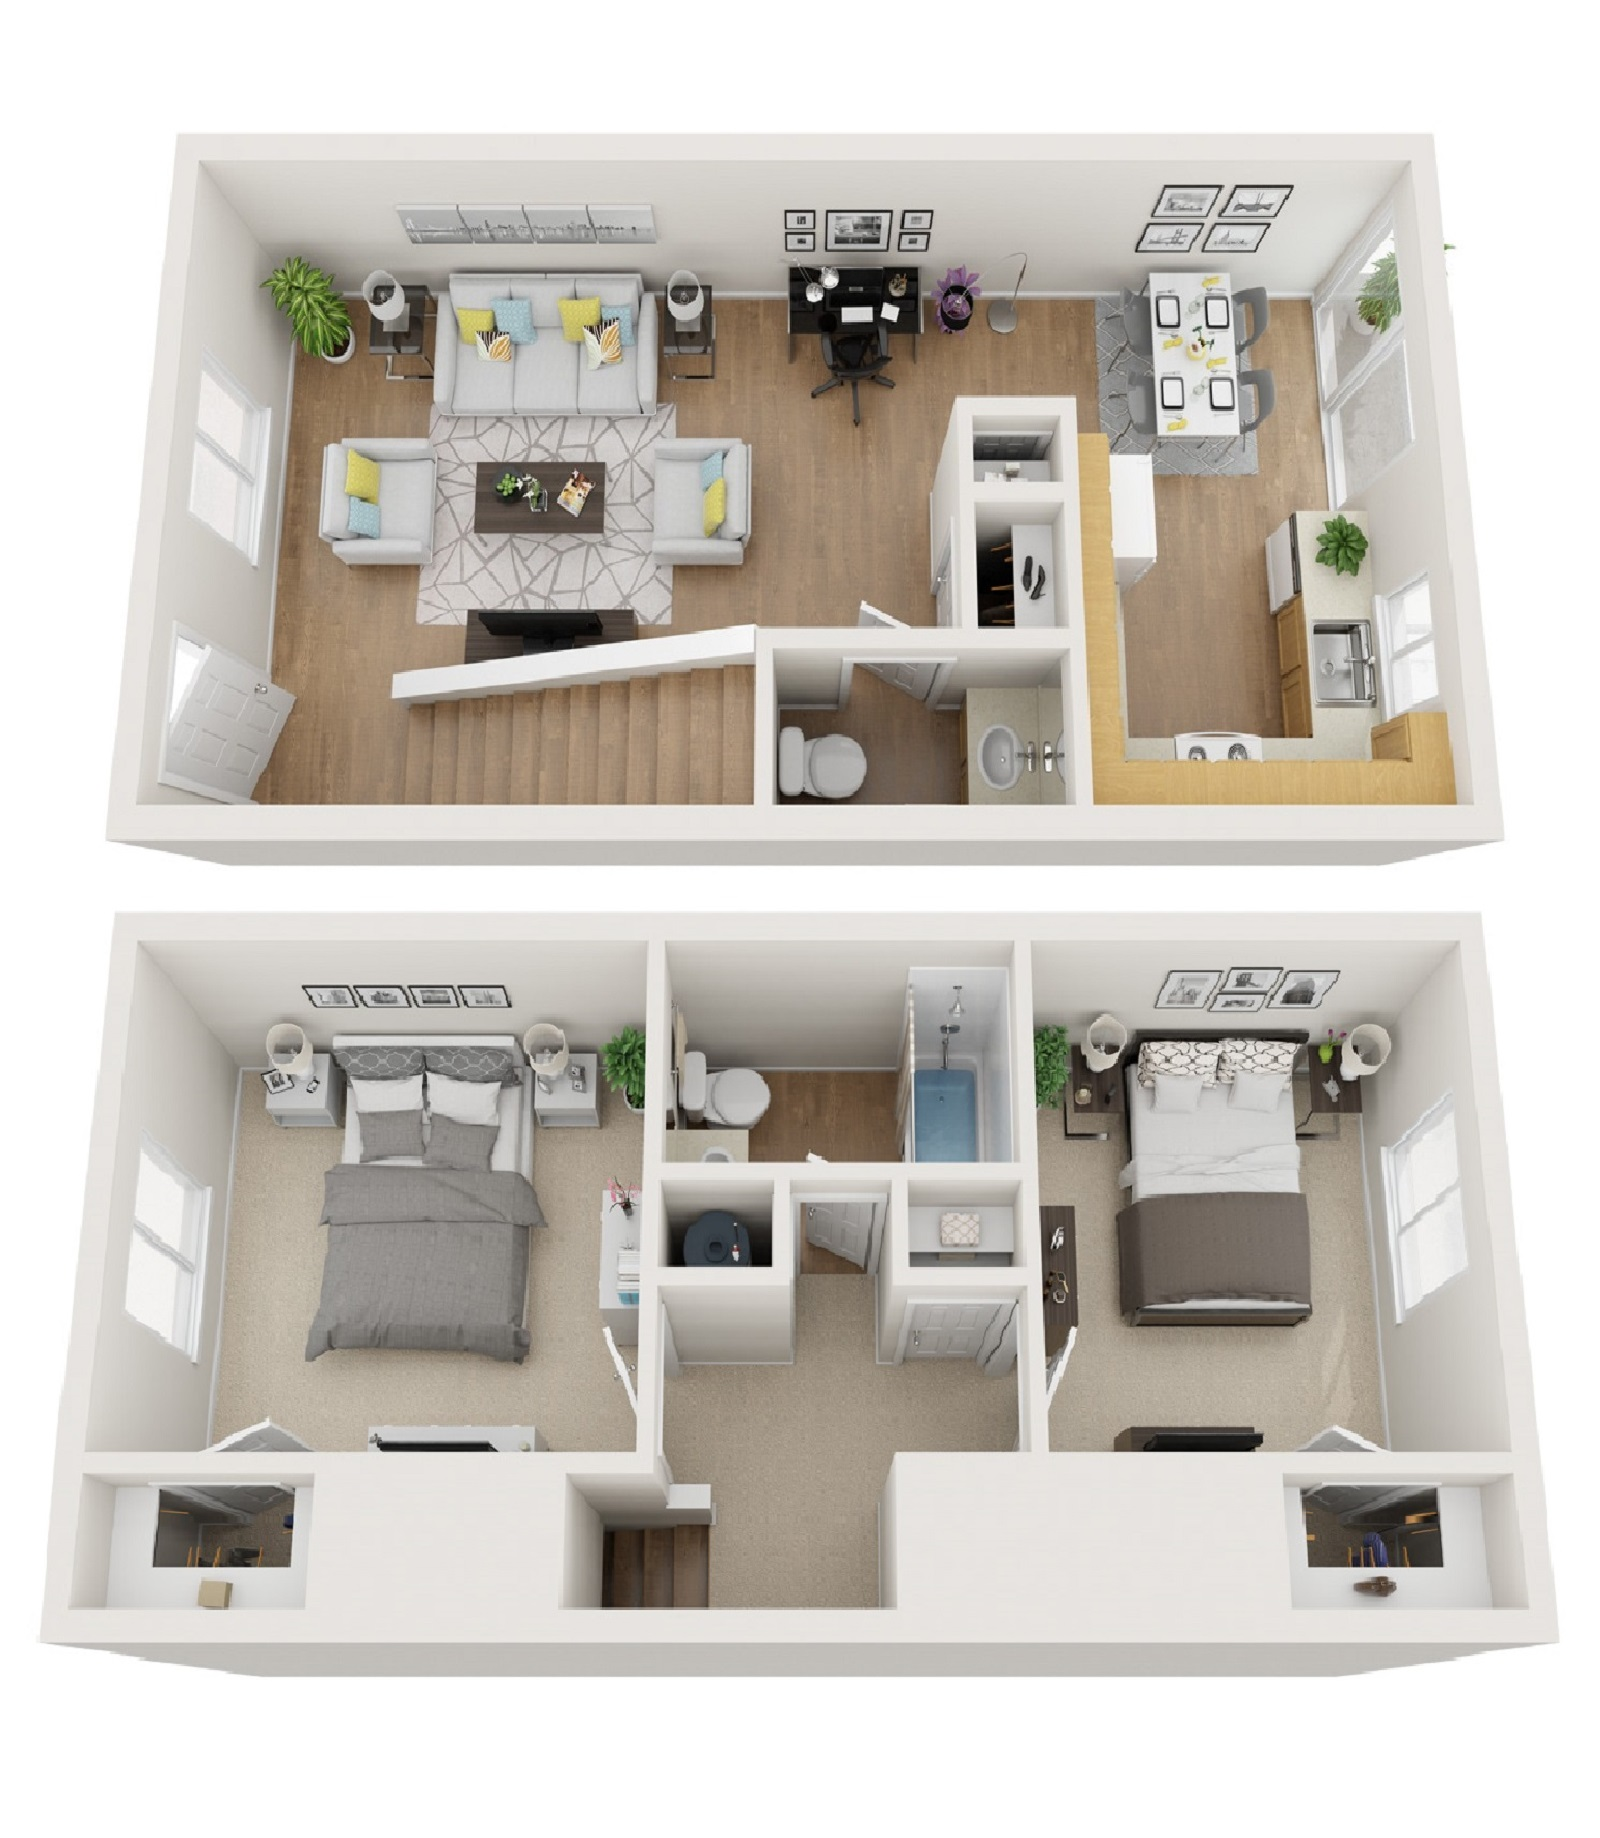 North Star Apartments Homes - Floorplan - 2 BR